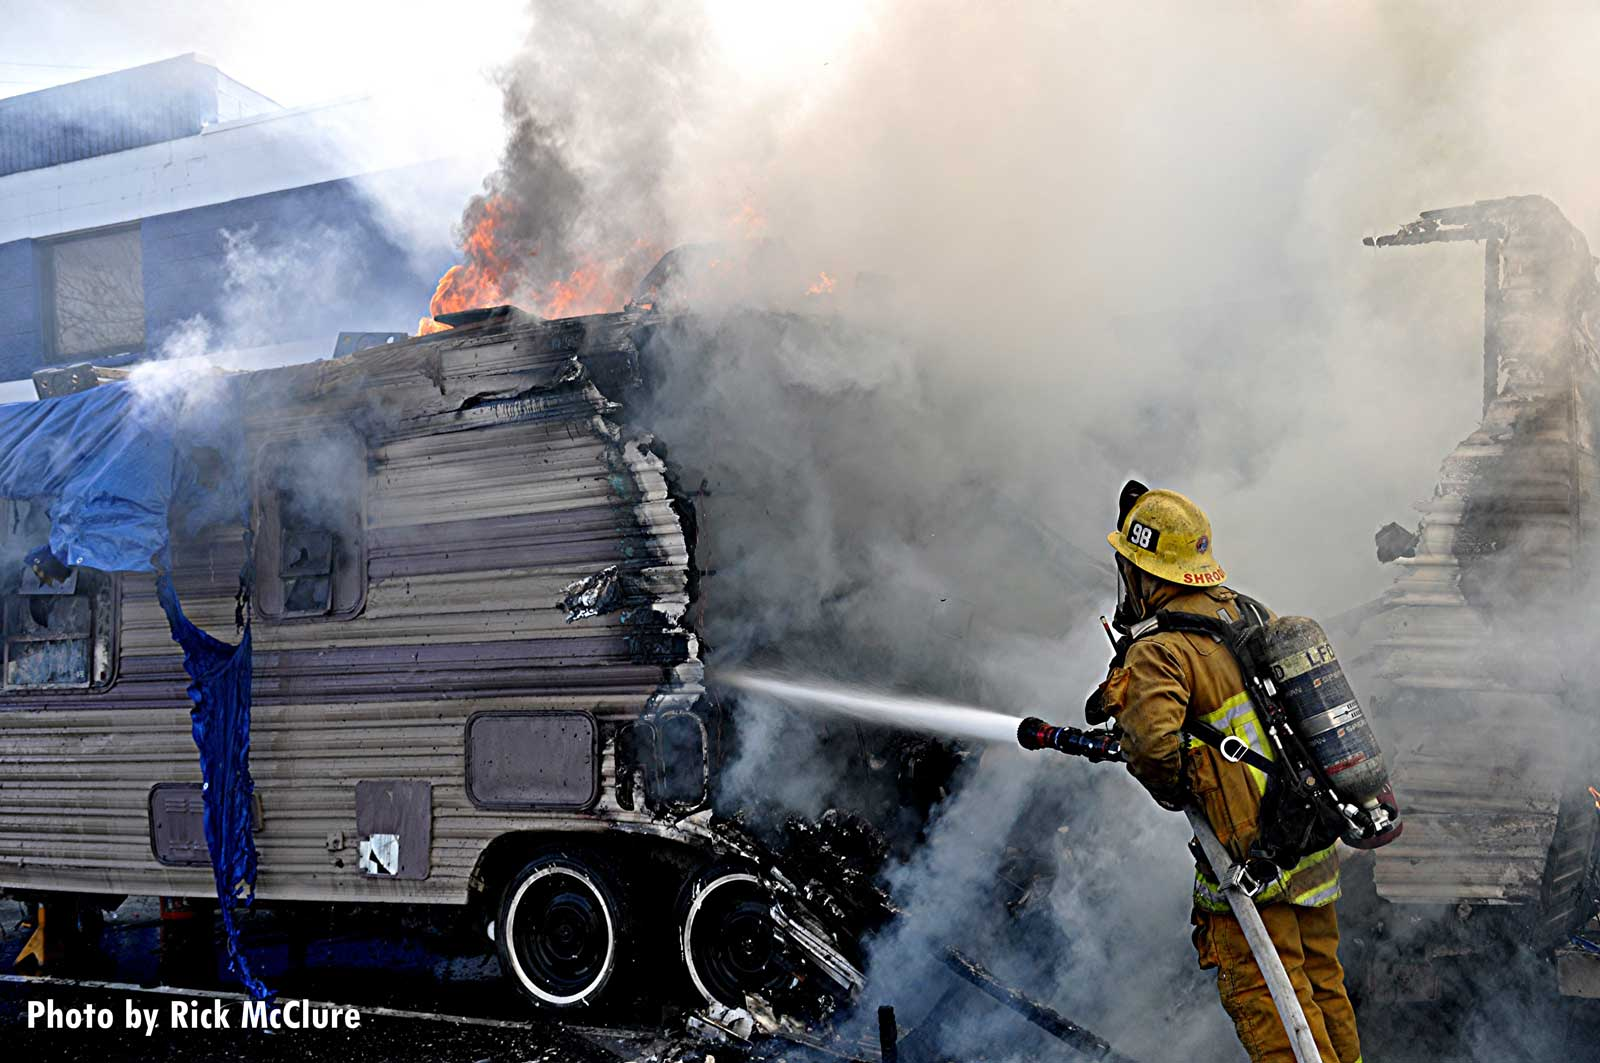 Firefighter applies water to burning trailer